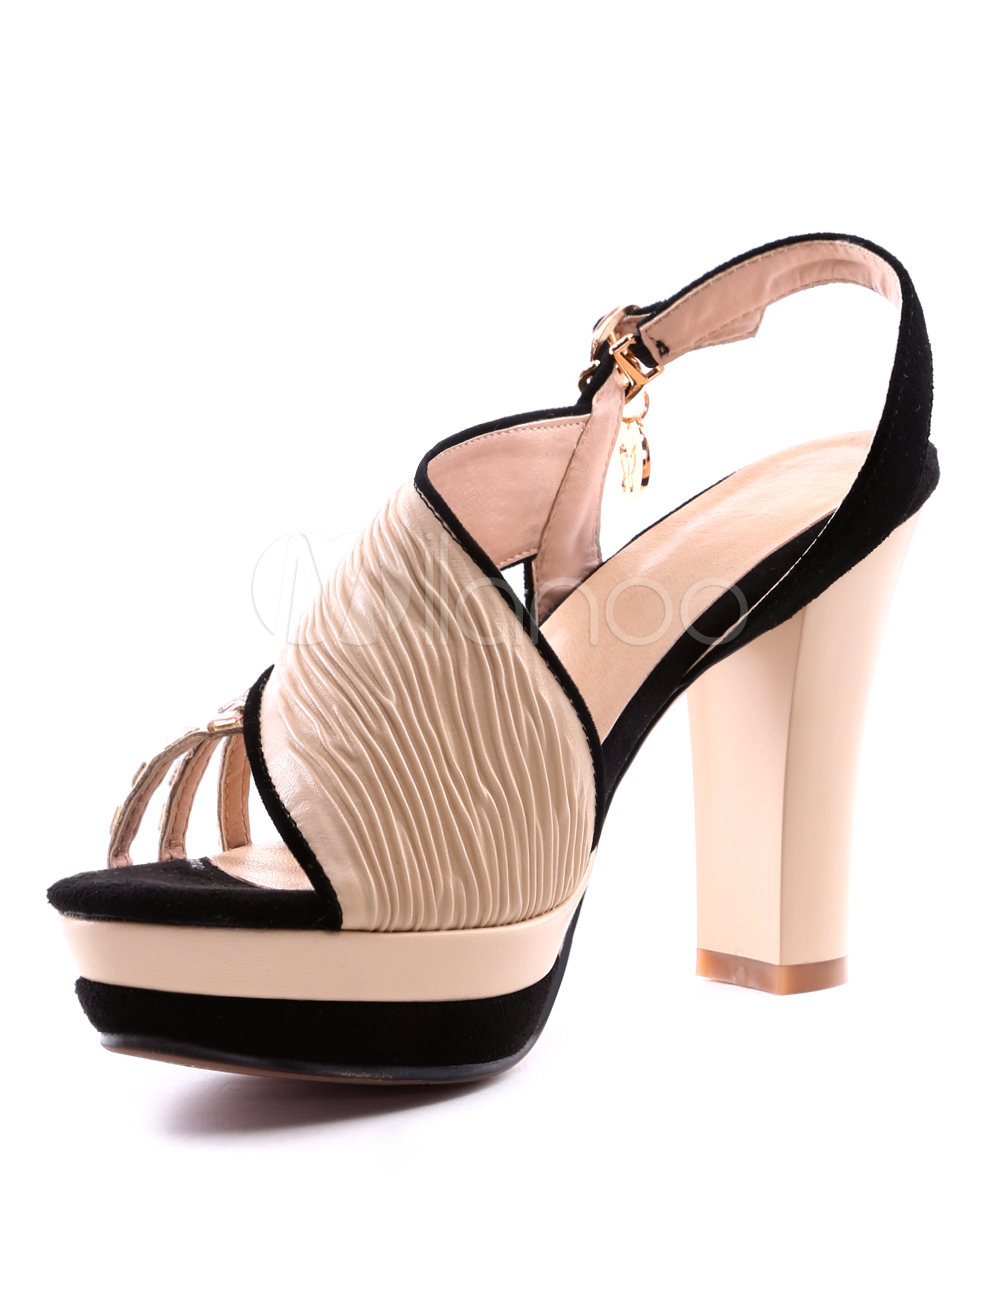 Apricot Colored Low Heel Shoes